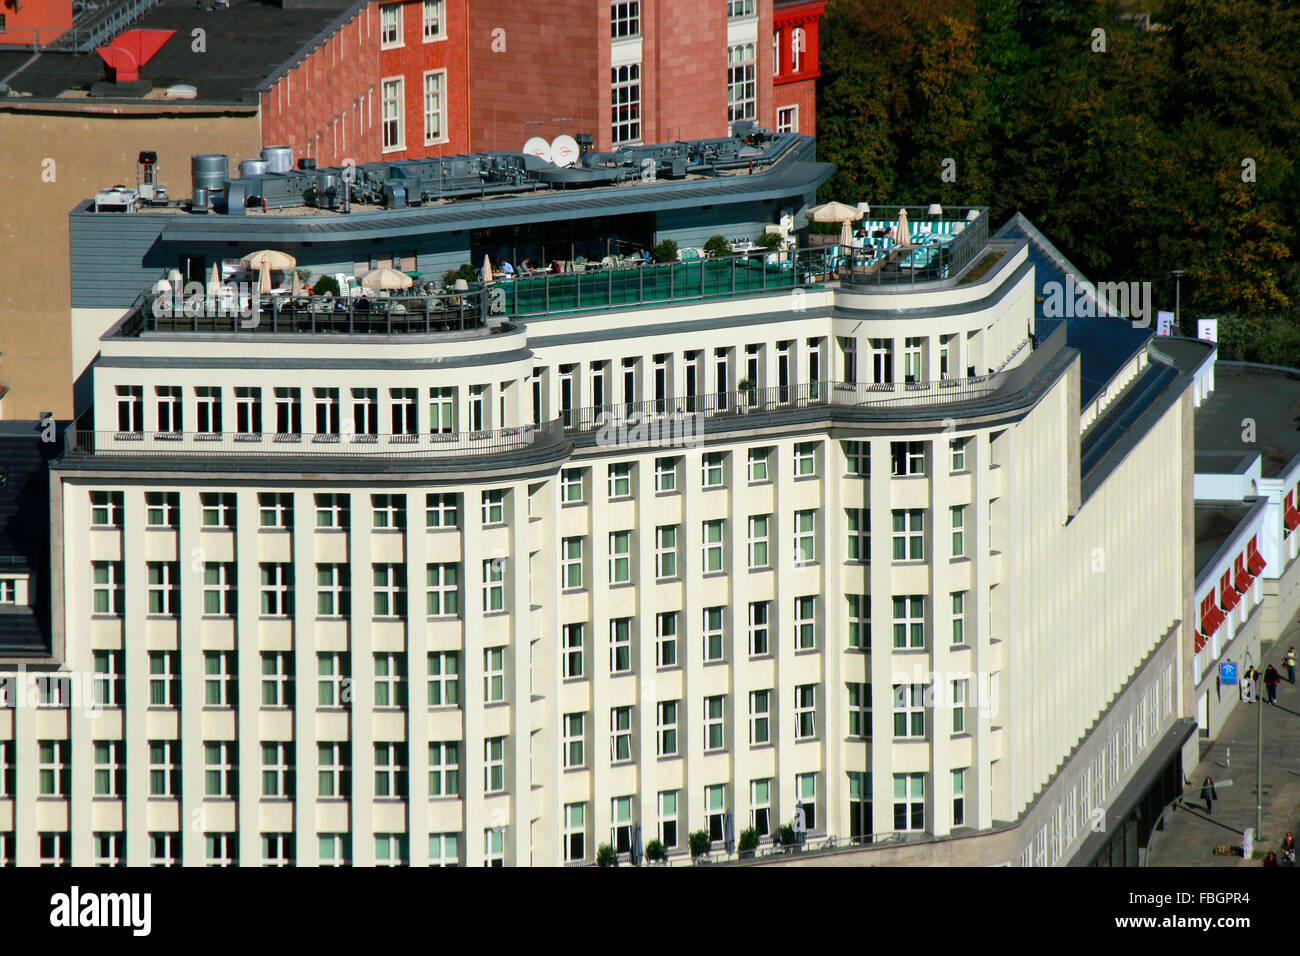 Luftbild Soho House Berlin Mitte Stockfoto Bild 93182184 Alamy